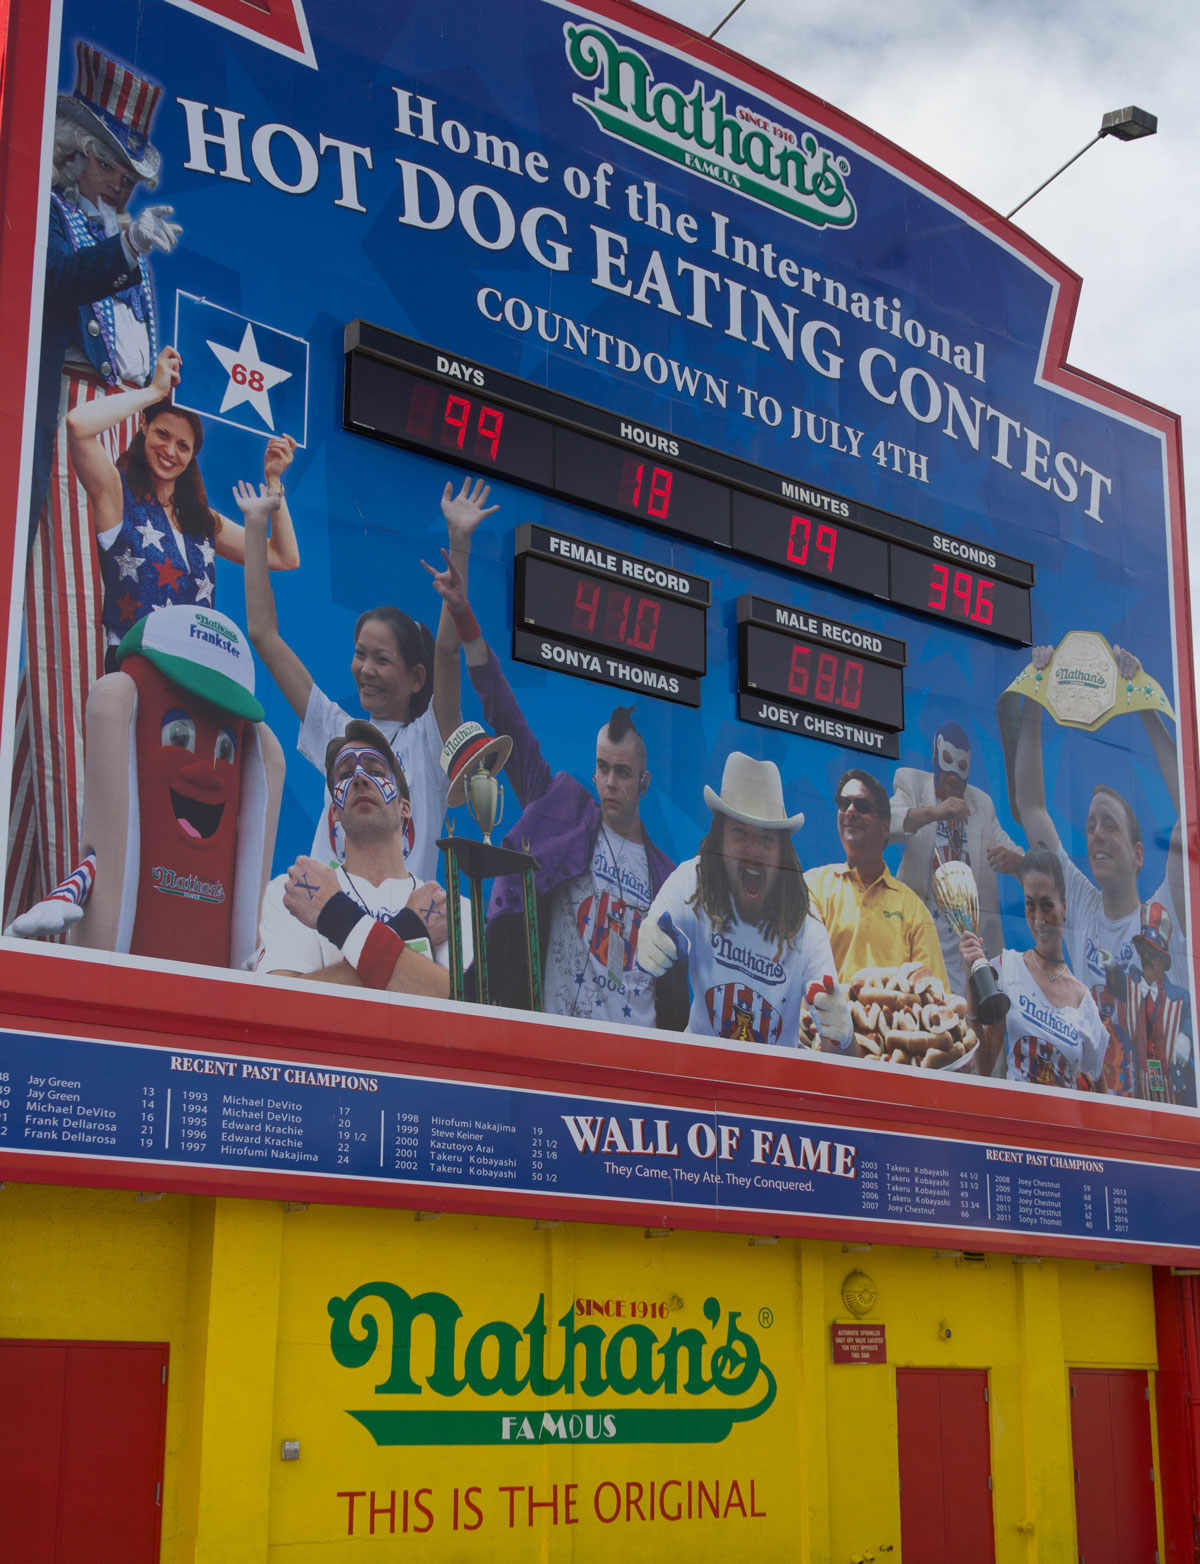 nathans-hot-dog-eating-contest-new-york